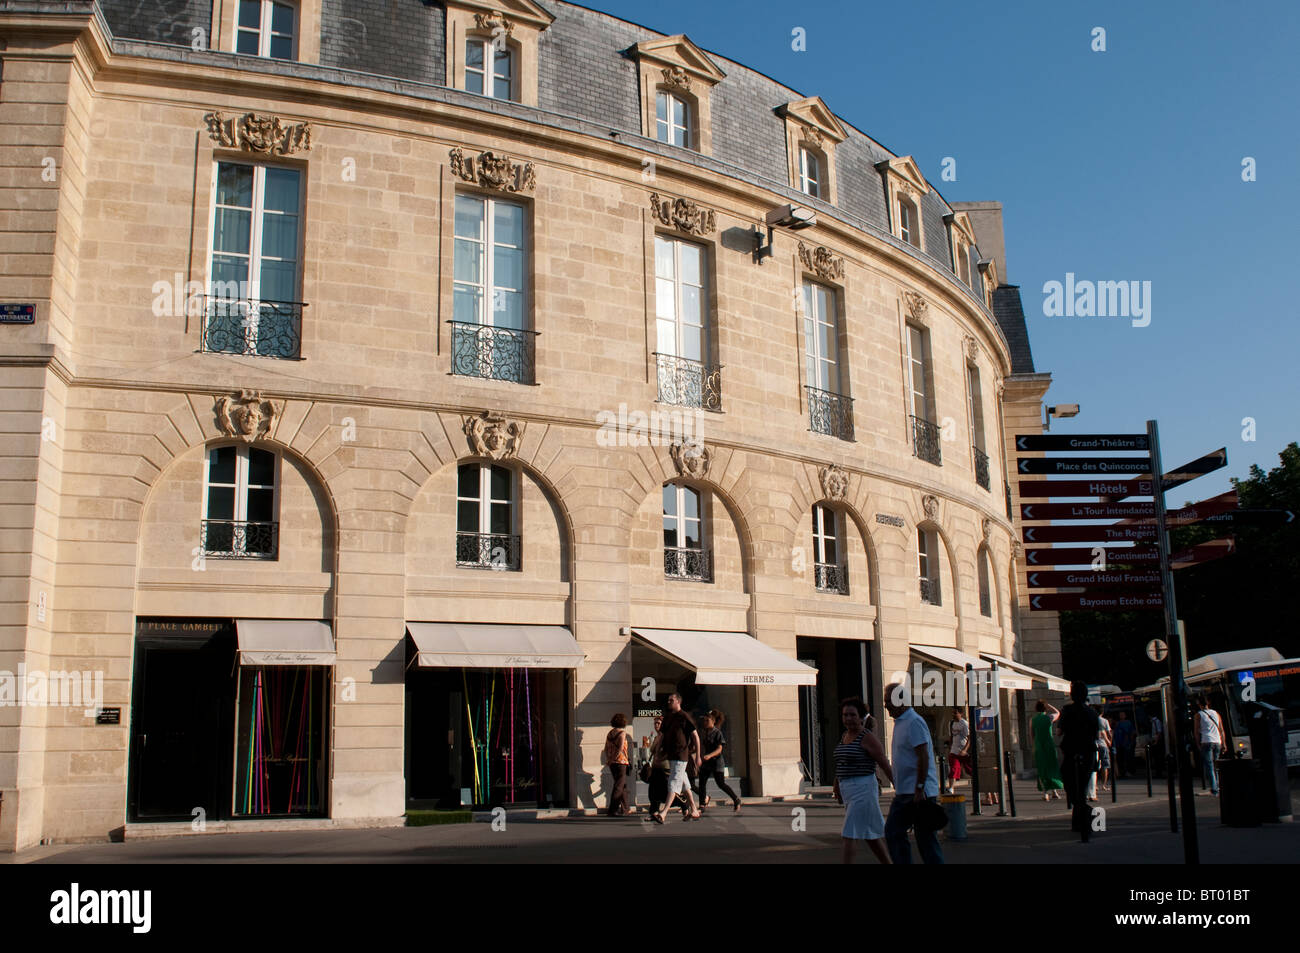 House on the Place Gambetta, Bordeaux, France - Stock Image